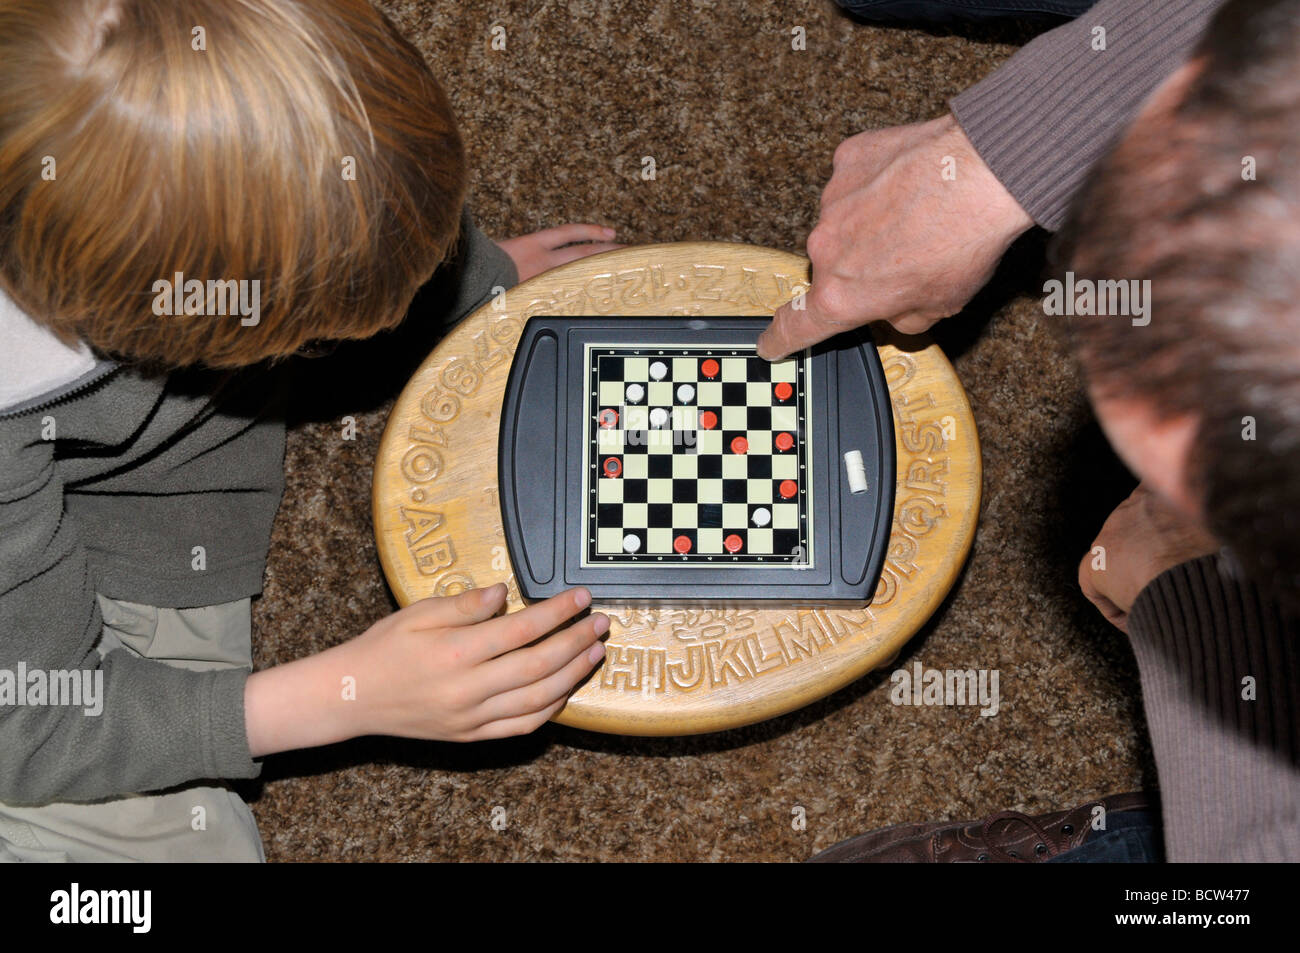 Looking down on a father and son playing a game of drafts. - Stock Image